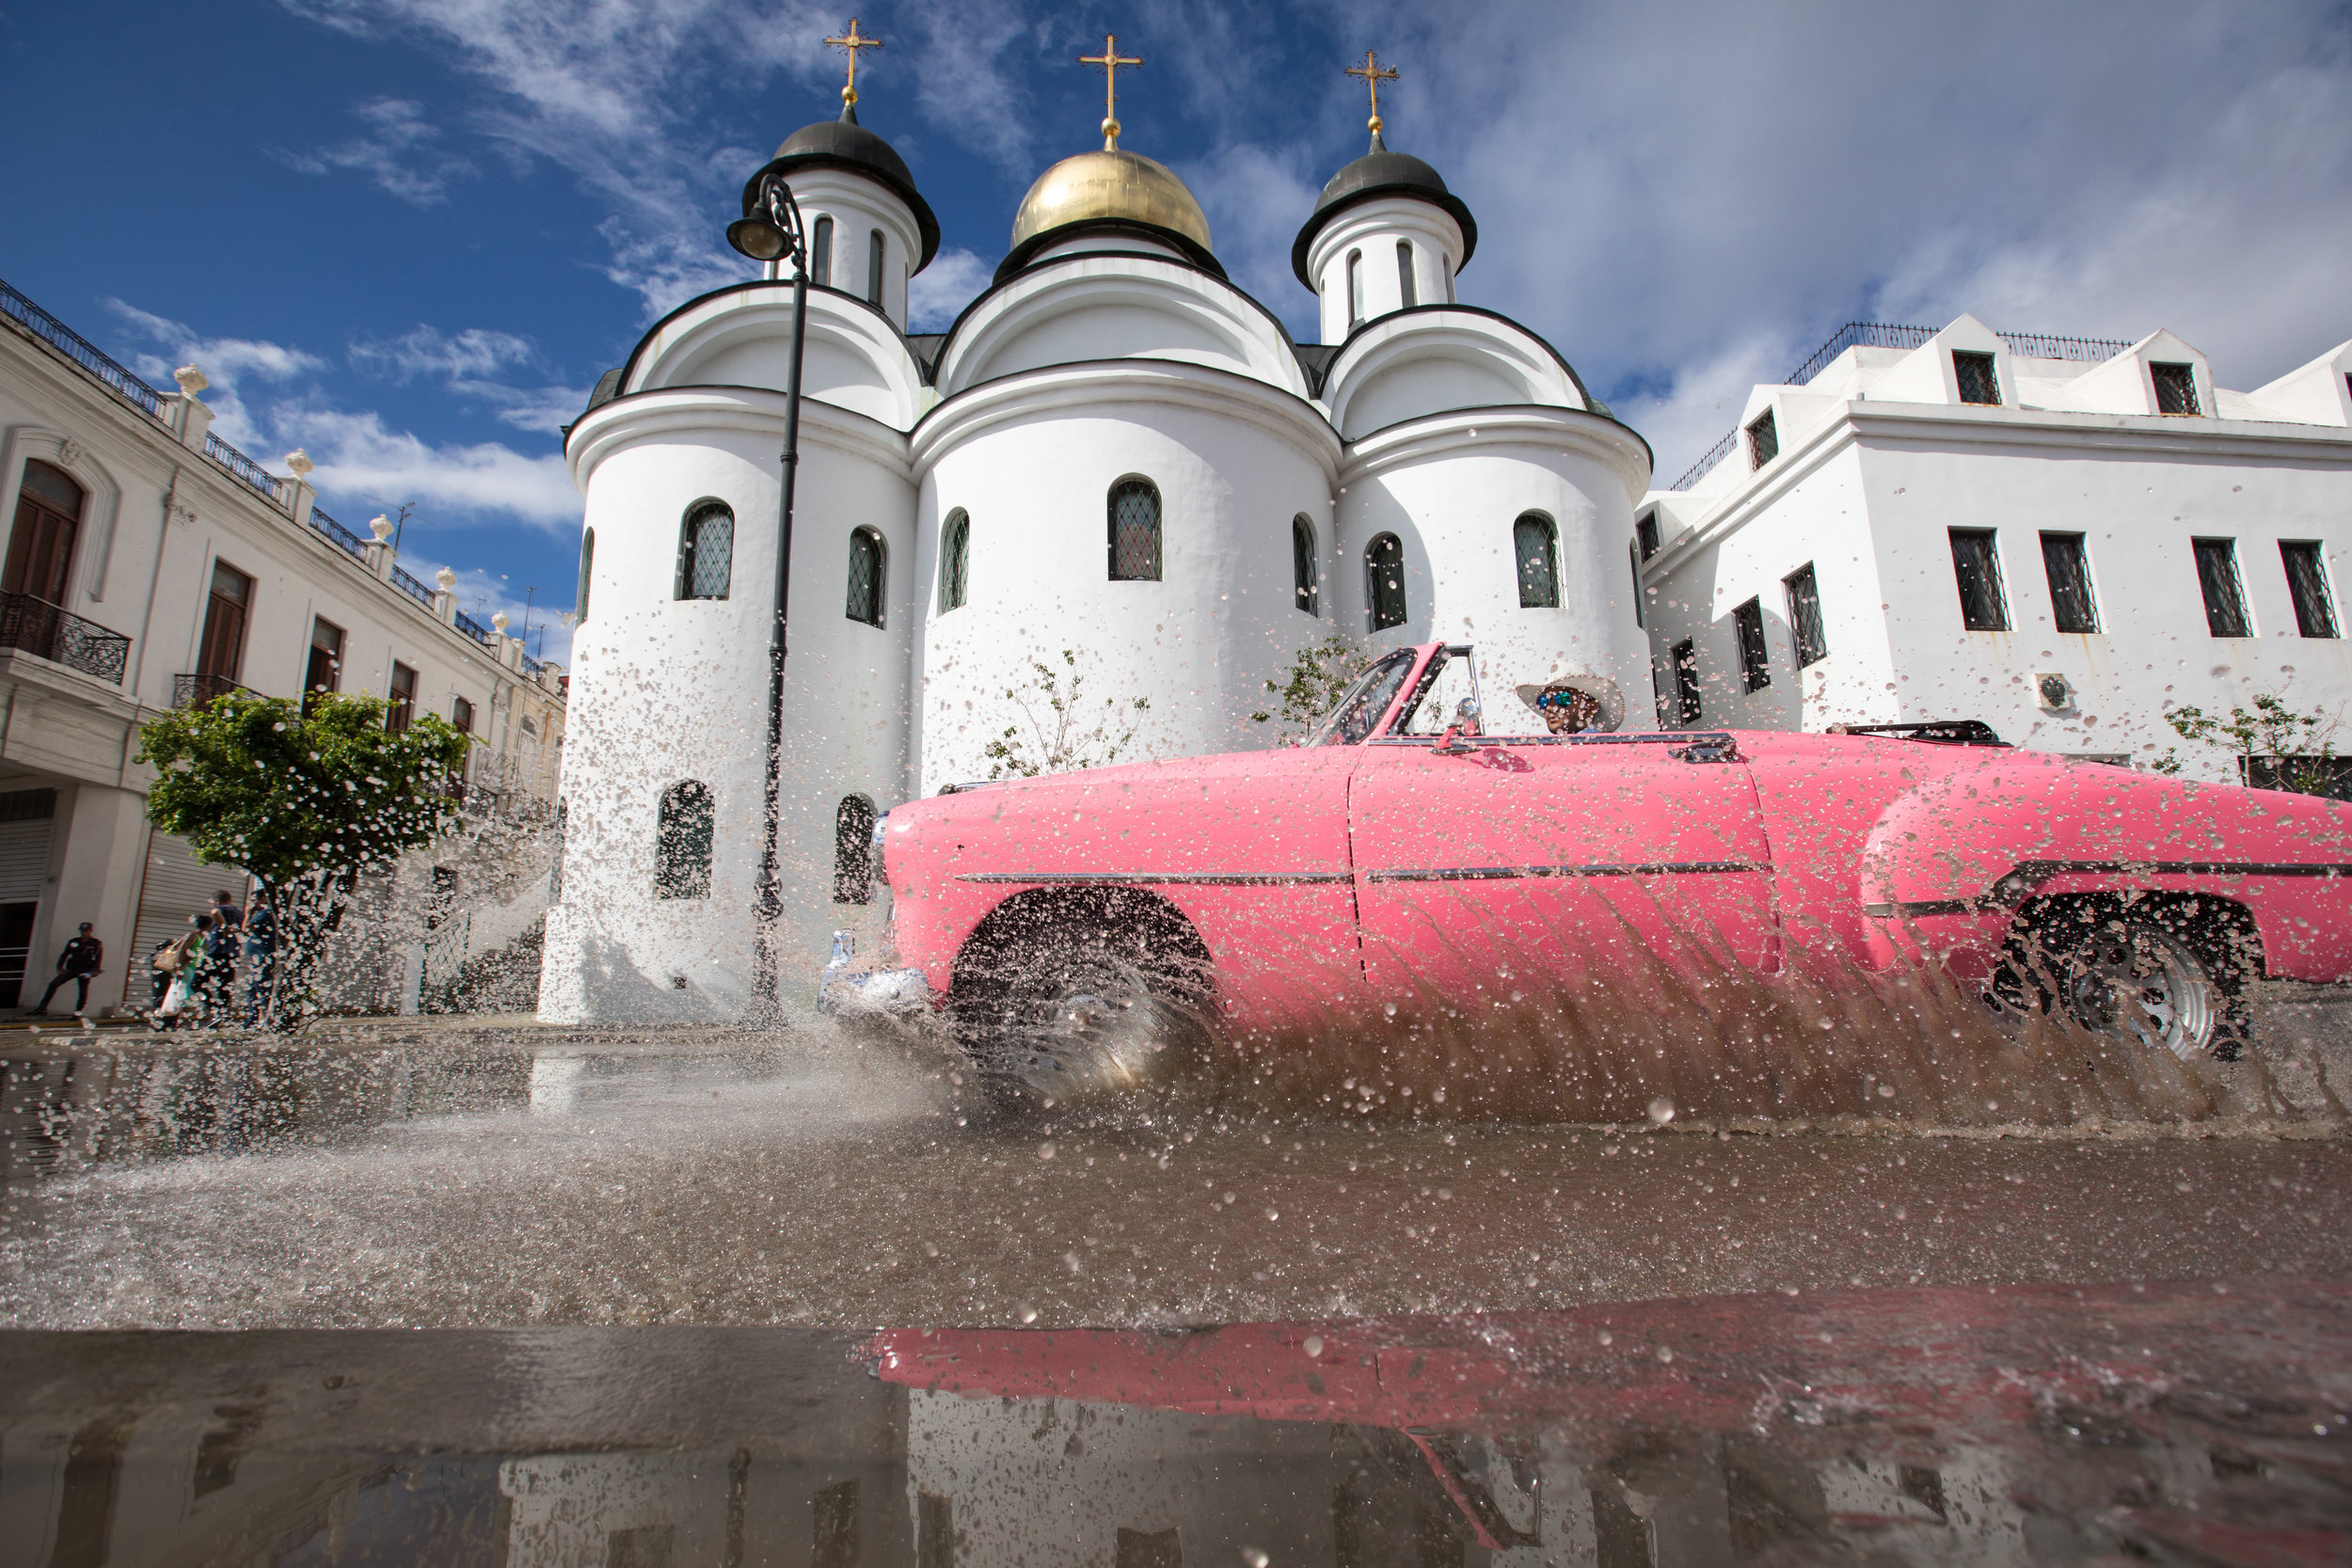 'Colourful Cuba' my image from Havana to be exhibited as part of PhotoPlace's upcoming Travel exhibition.